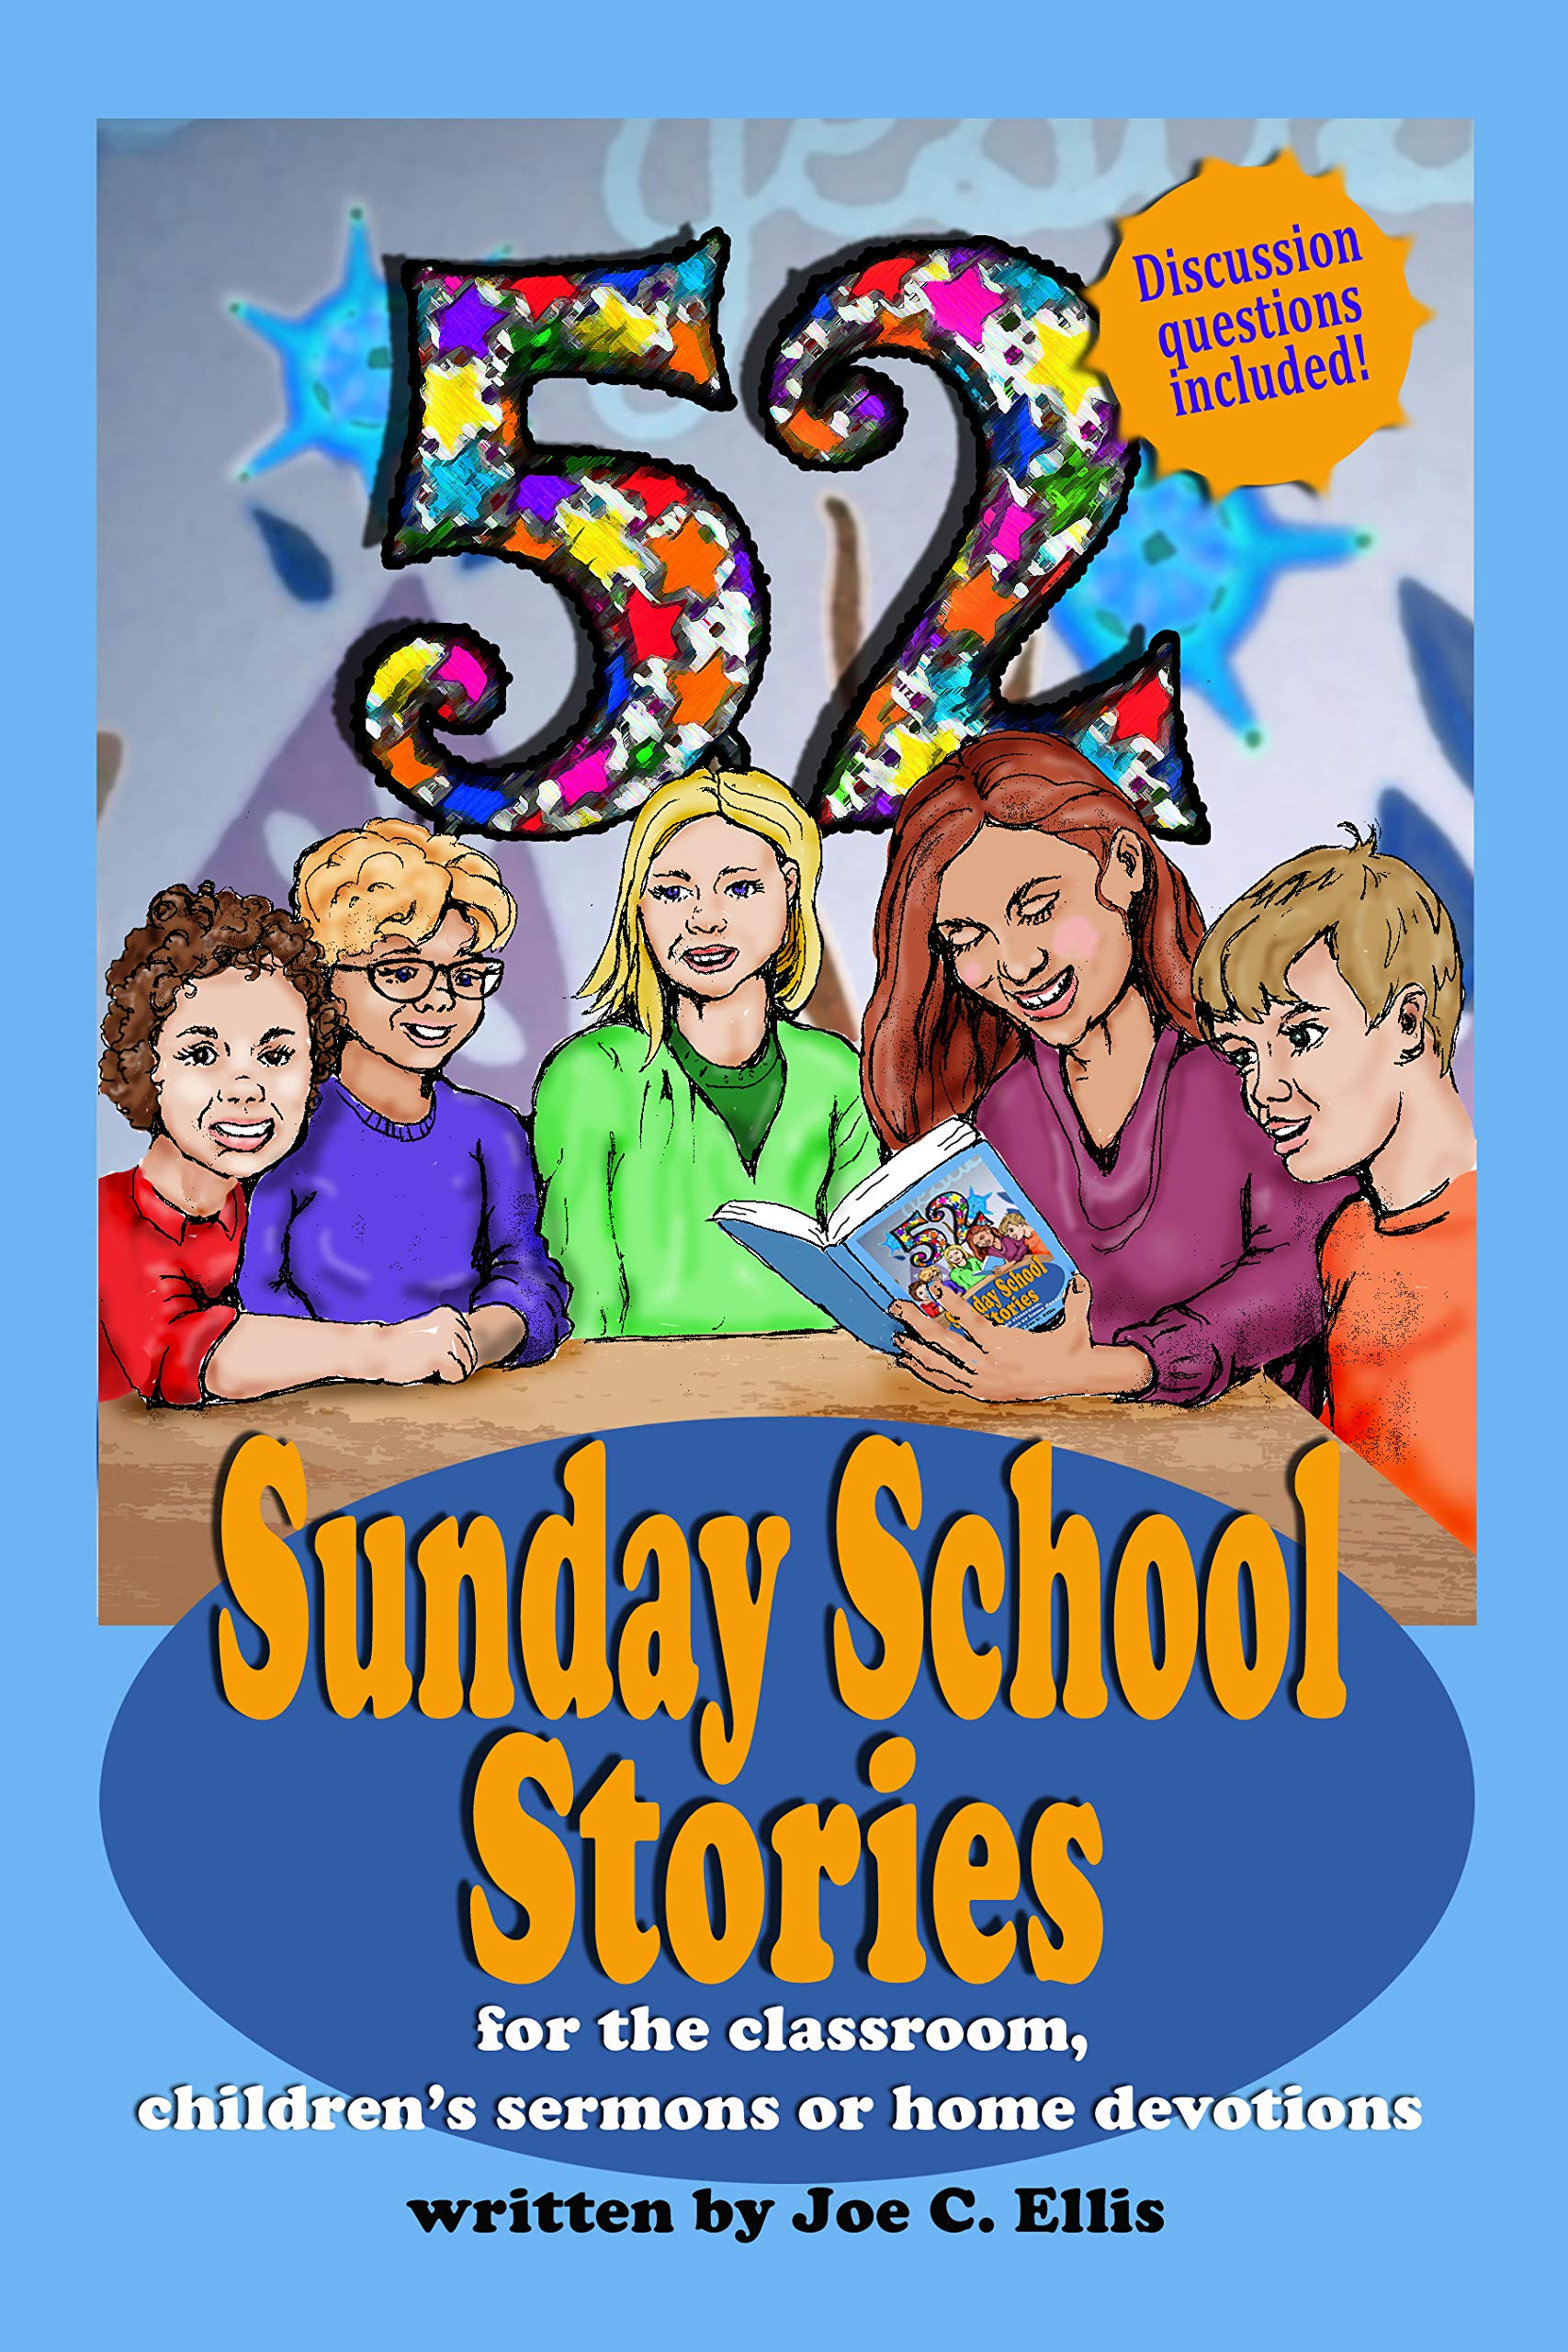 52 Sunday School Stories: For the Classroom, Children's Sermons or Home Devotions